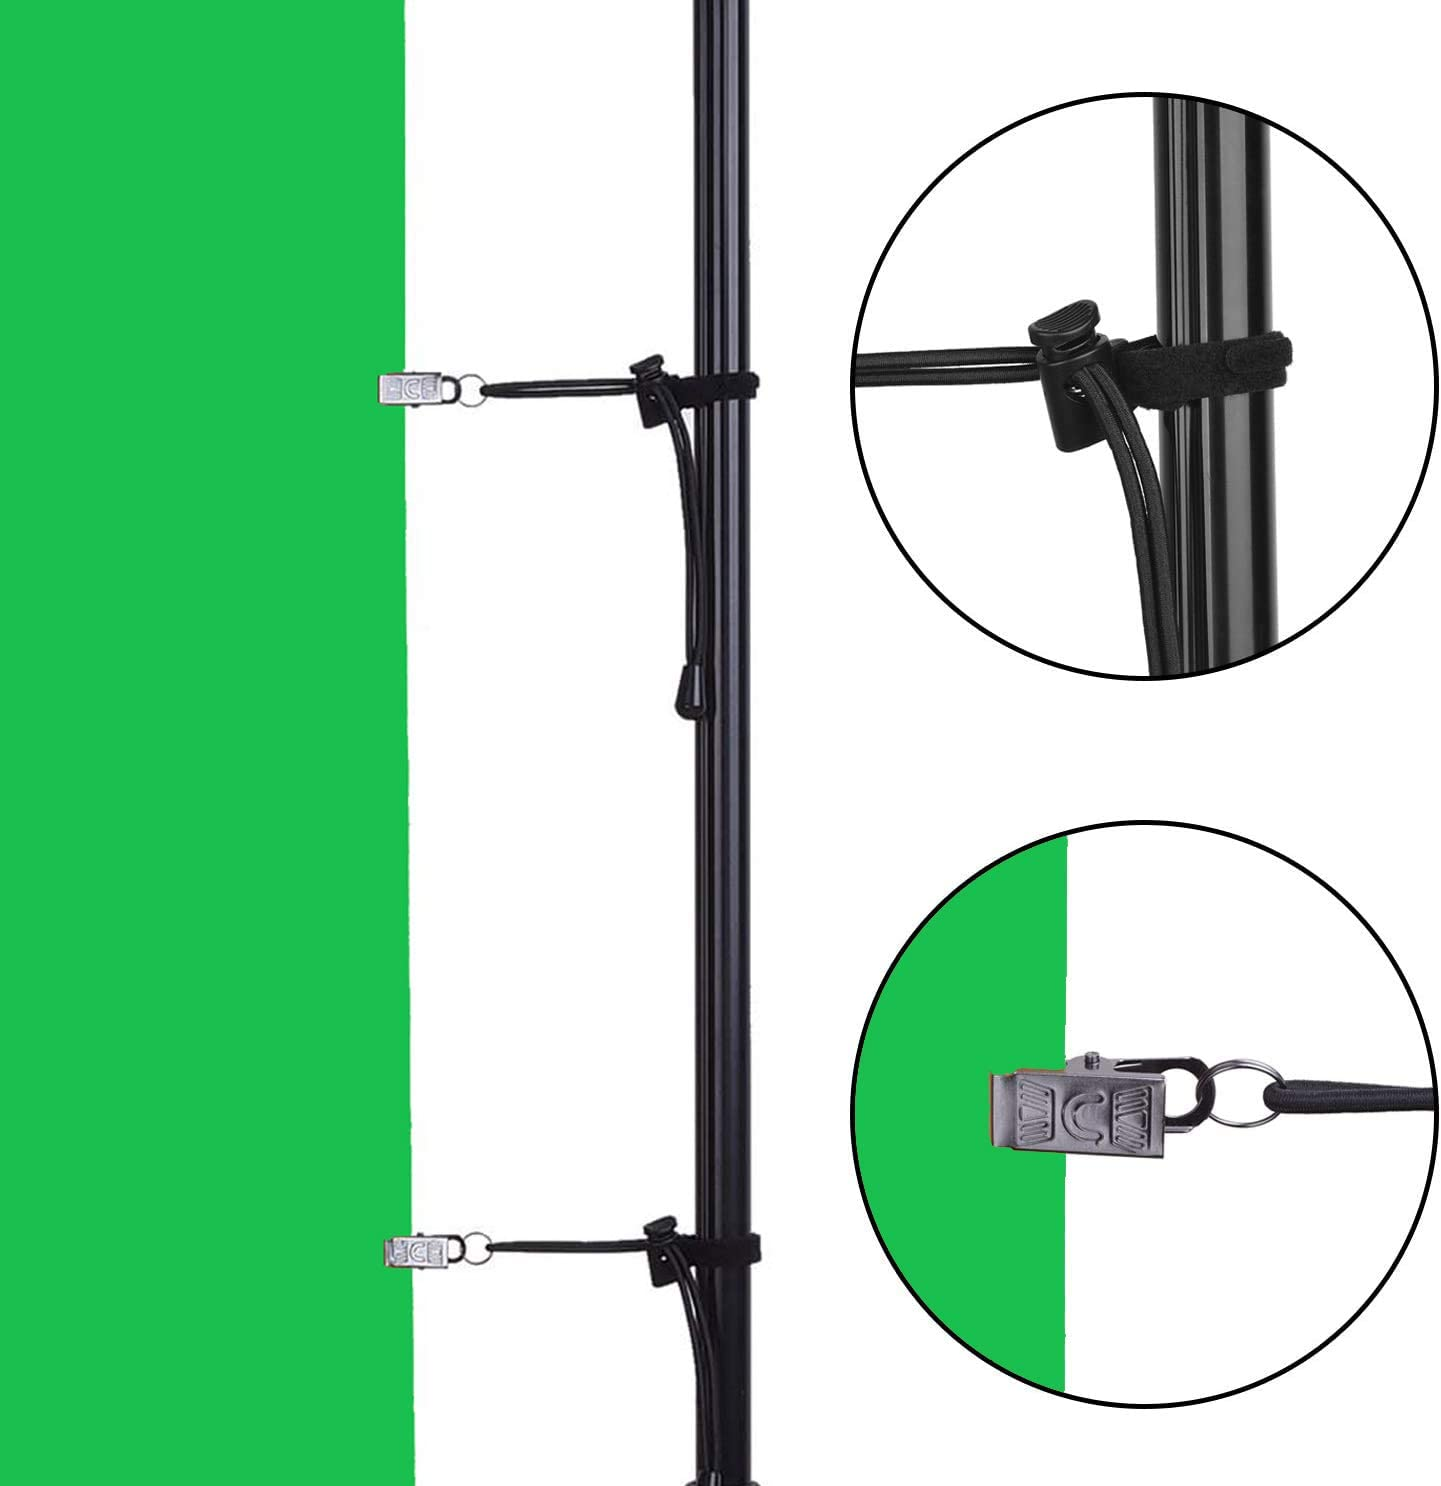 TANIASH Photo Video Studio Backdrop Stand,8.5x10ft Adjustable Backdrop Stands Background Support Kit with Carry Bag